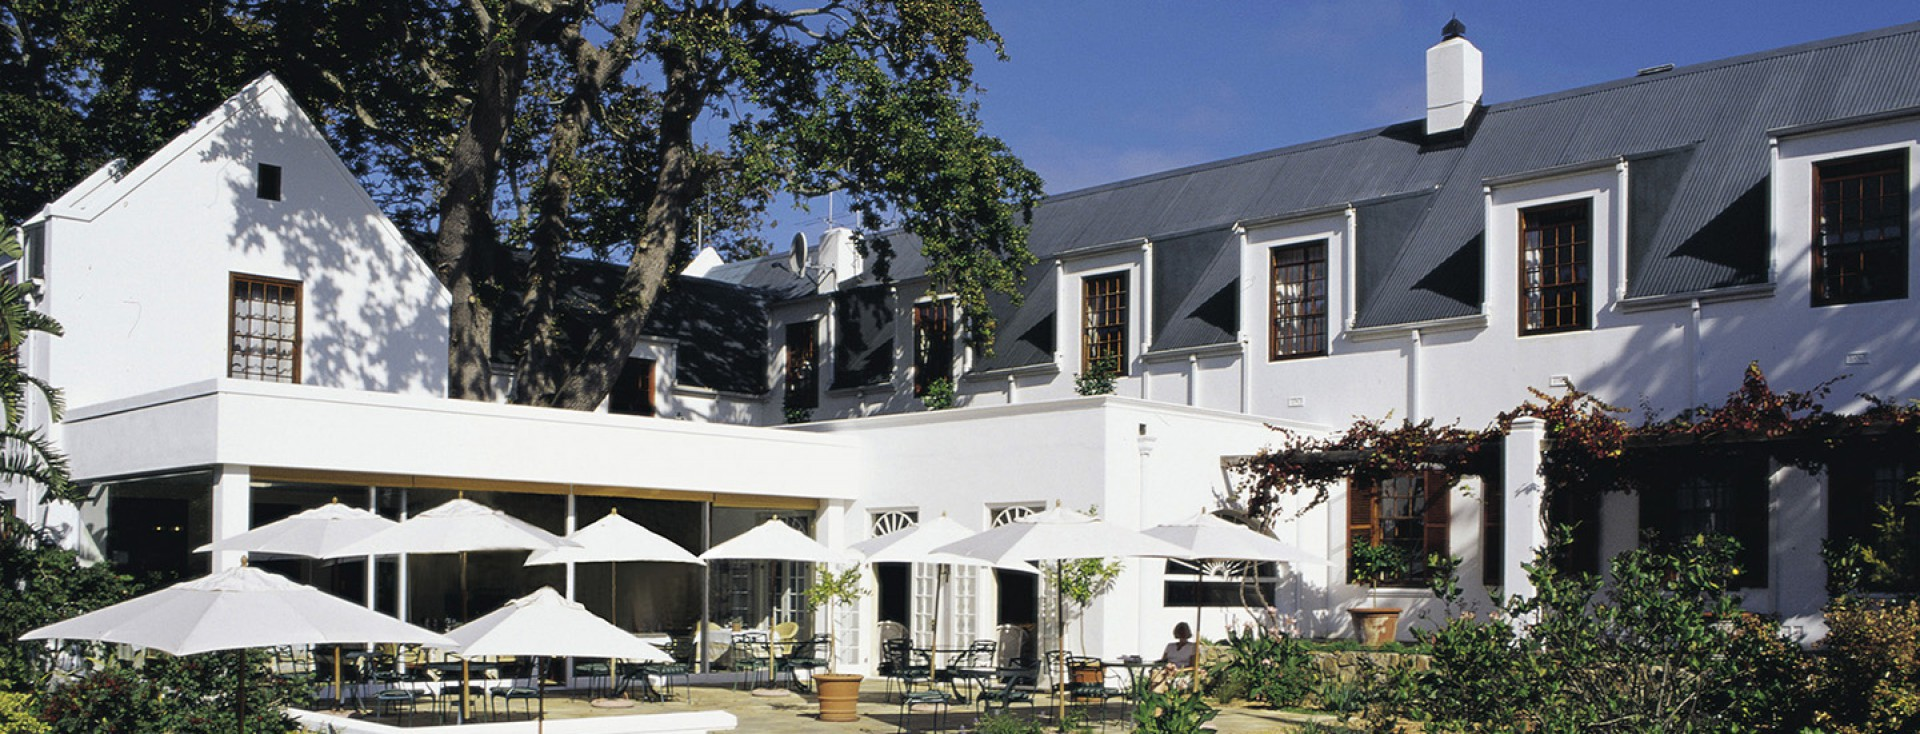 The Cellars-Hohenort Hotel